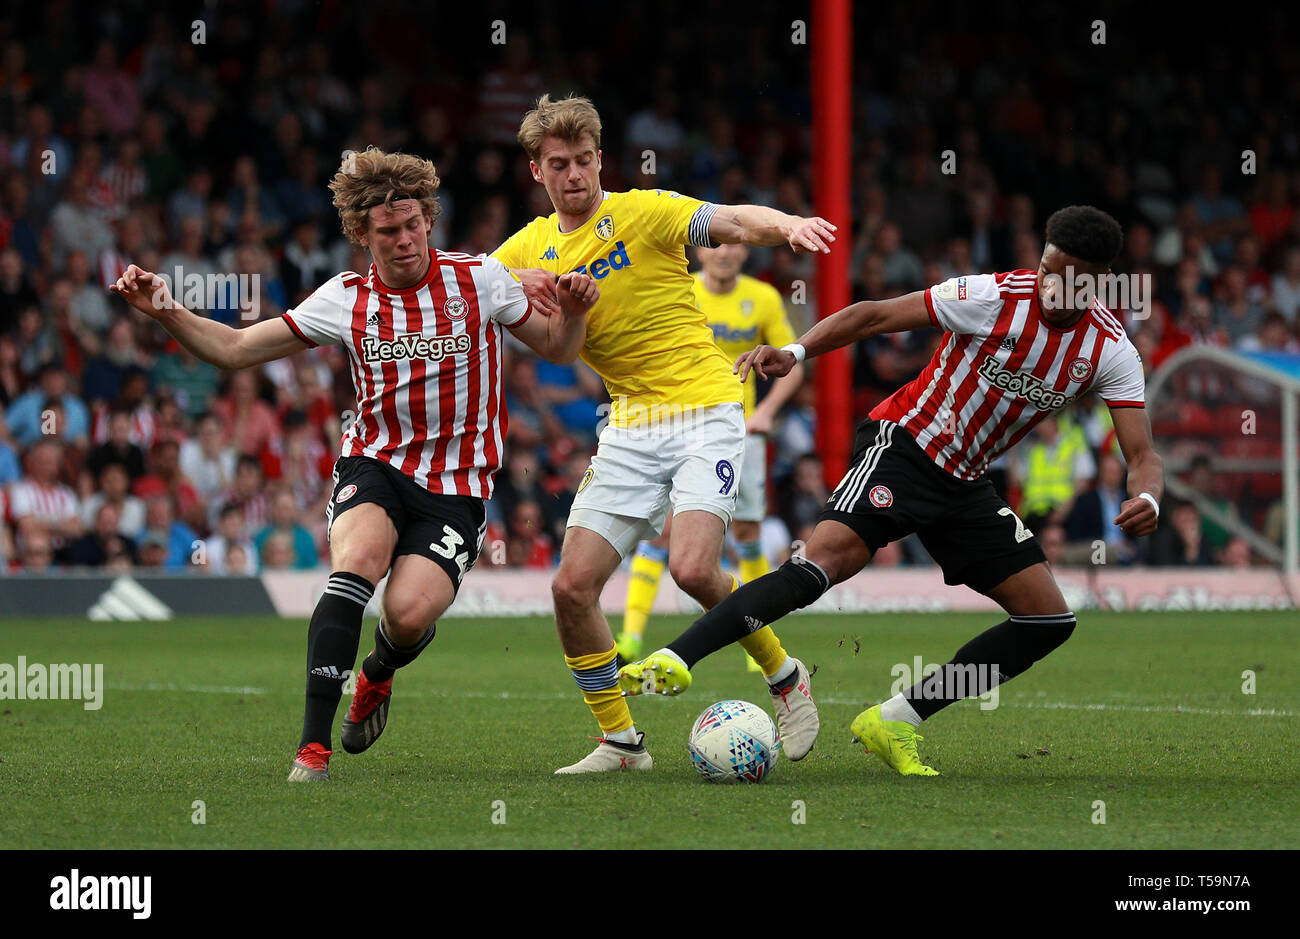 f67d848f Leeds United's Patrick Bamford battles for the ball with Brentford's Mads  Bech Sorensen (left) and Julian Jeanvier (right) during the Sky Bet  Championship ...